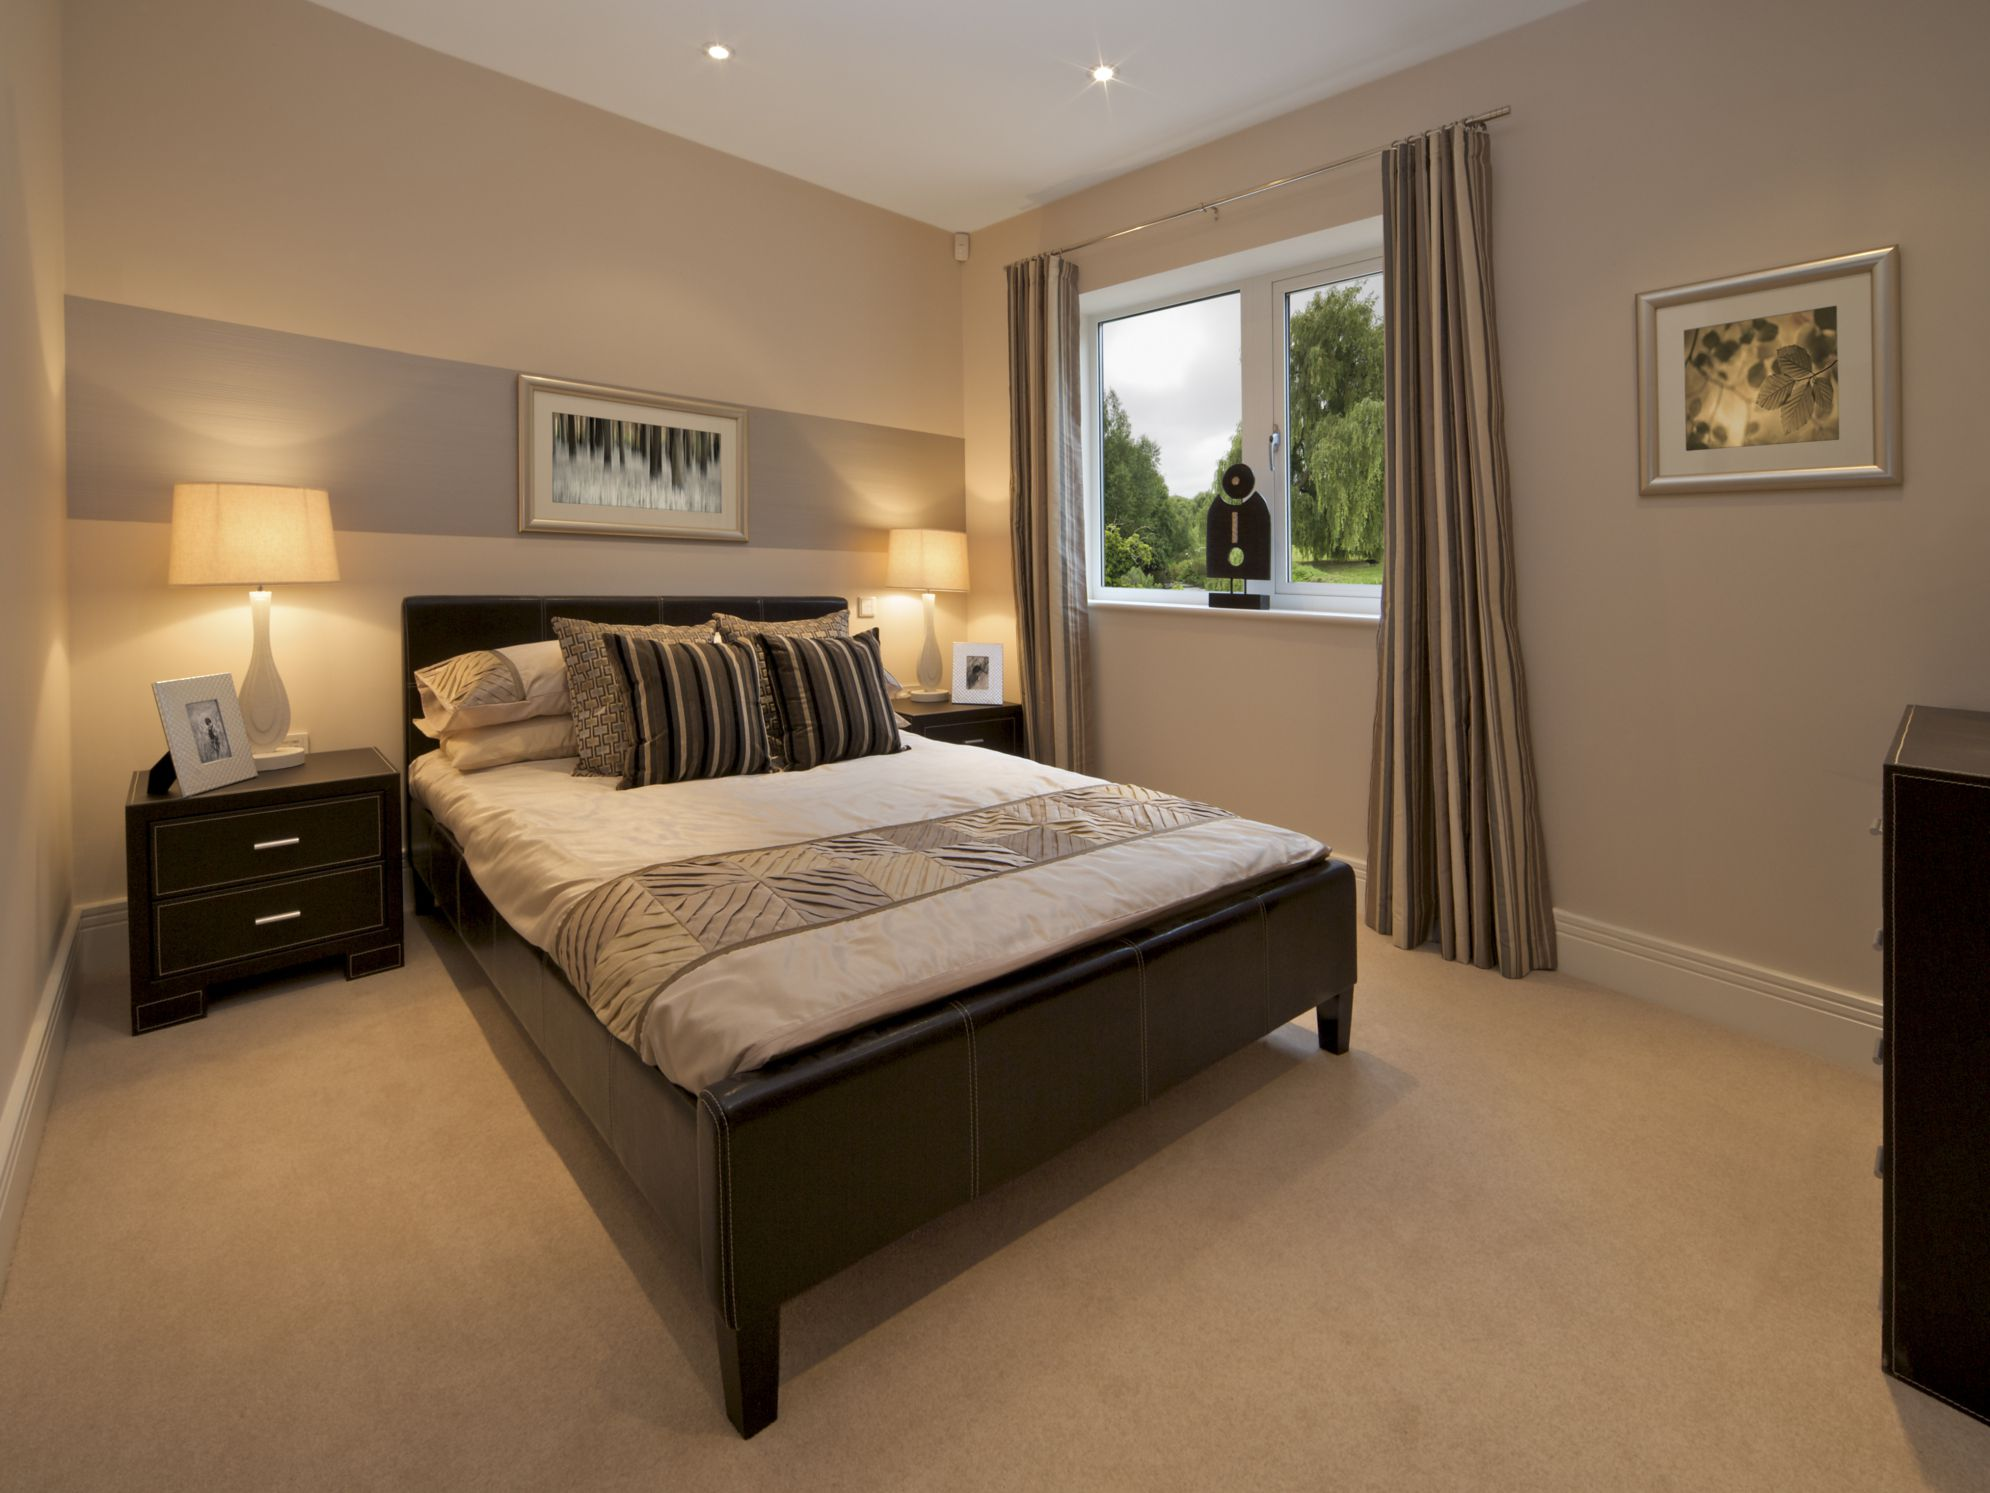 How To Use Carpet To Make Your Room Look Bigger